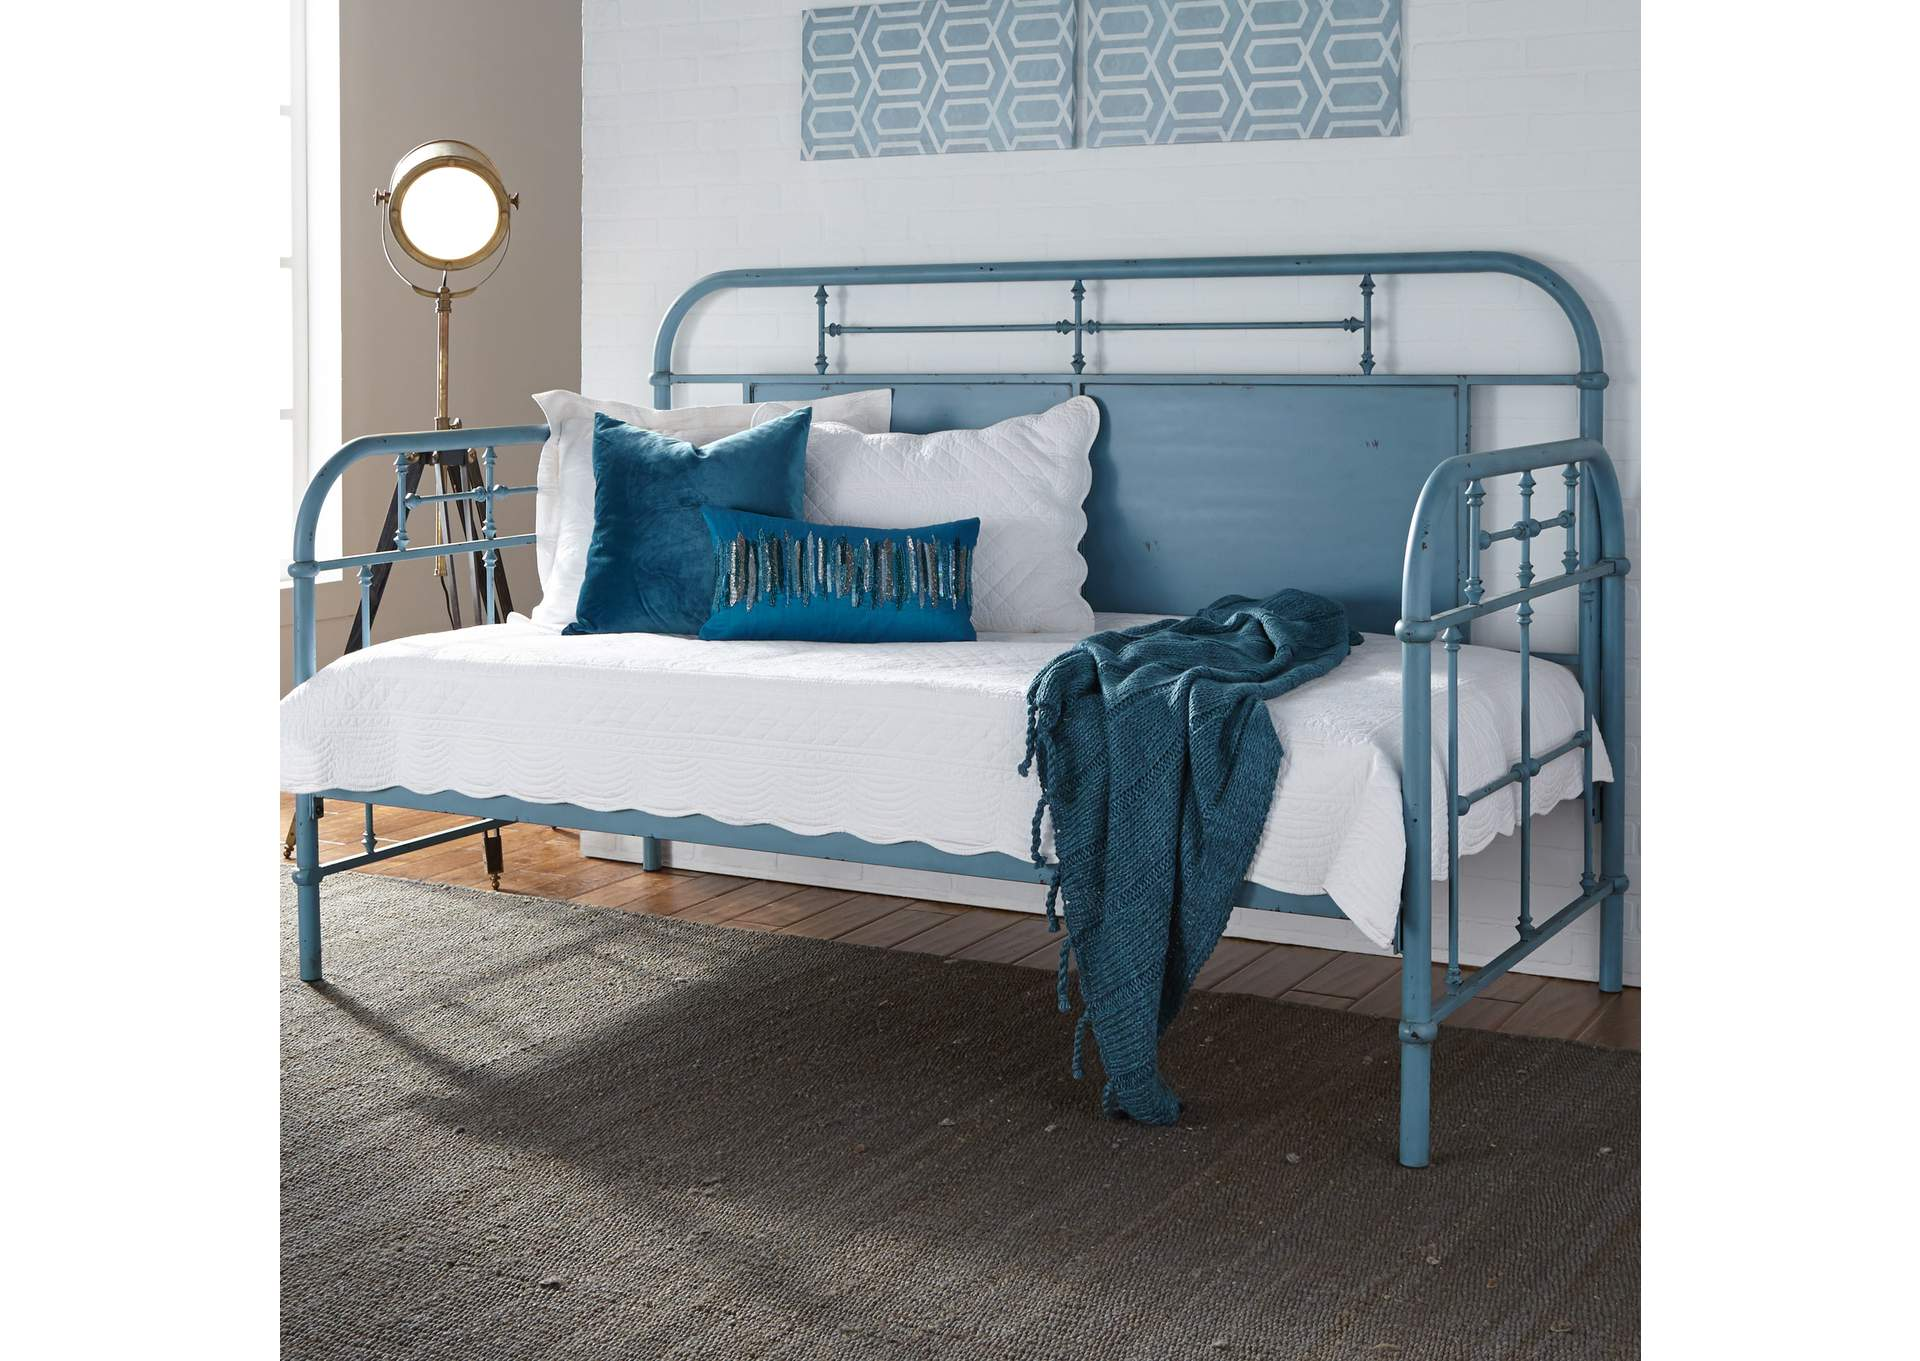 Vintage Series Distressed Metal Twin Metal Day Bed - Blue,Liberty